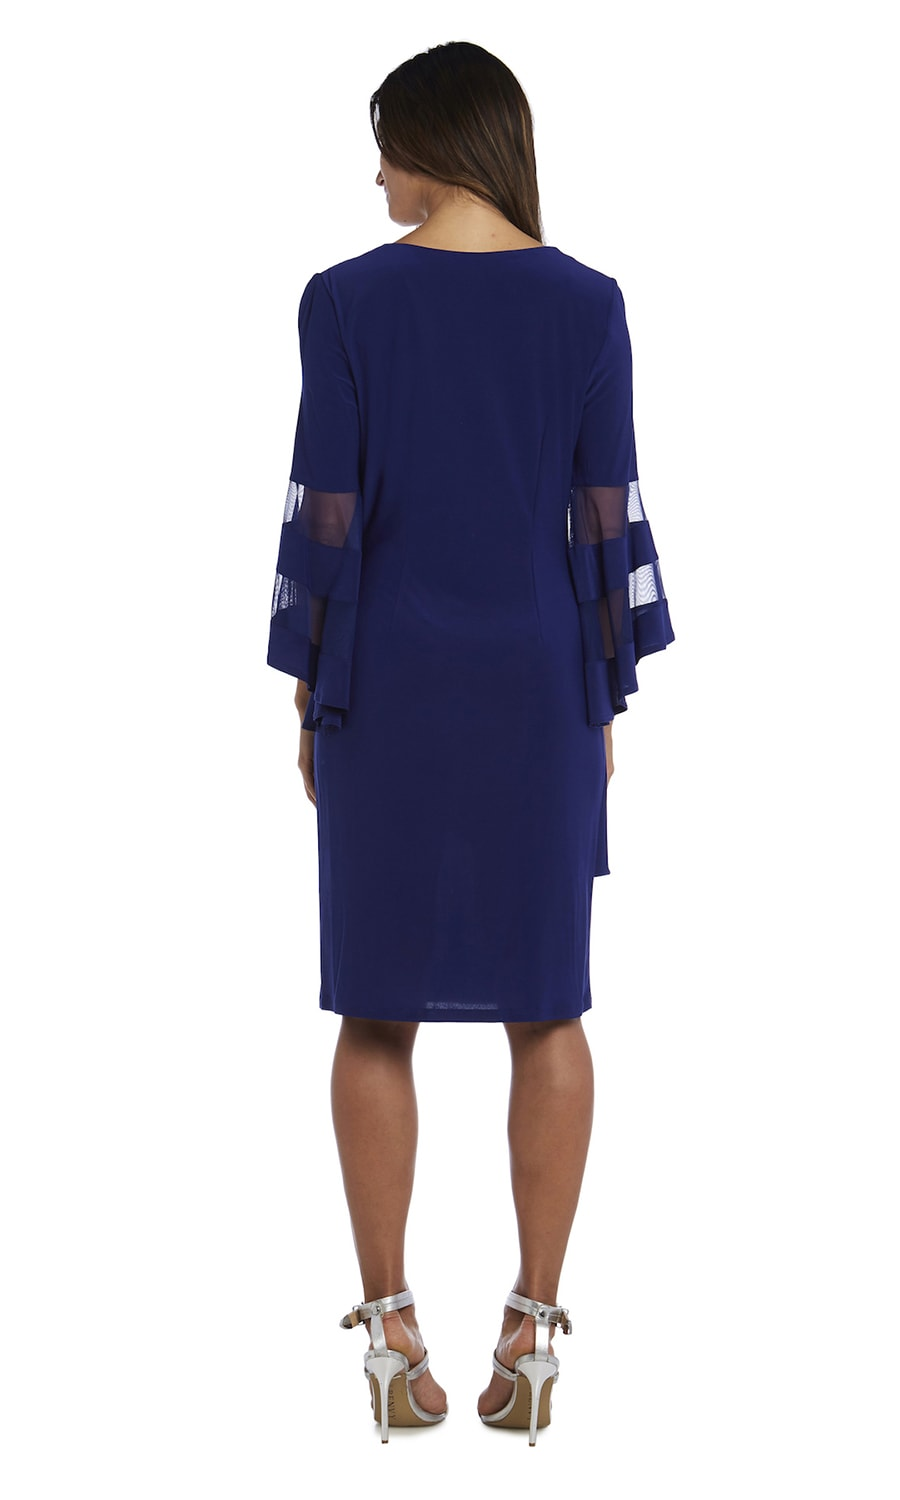 Illusion Bell Sleeve Dress with Rush Detail at Waist - Misses - Electric Blue - Back